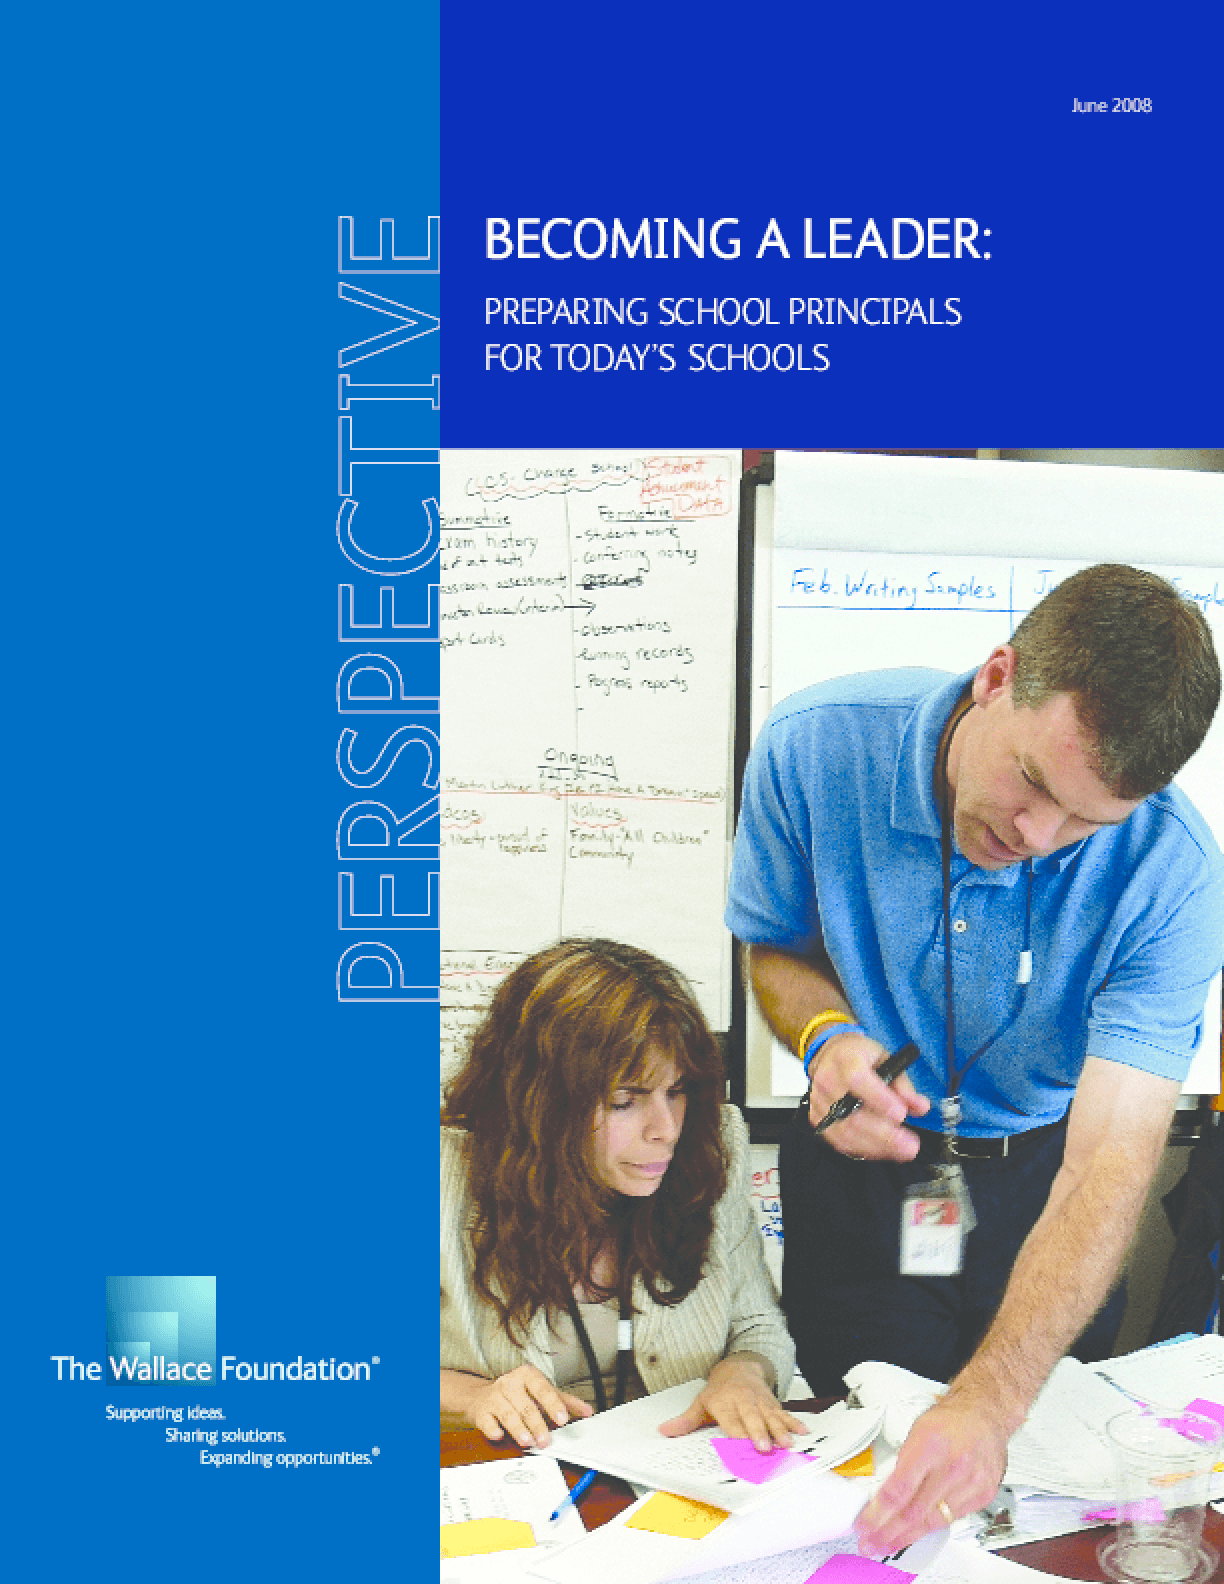 Becoming a Leader: Preparing School Principals for Today's Schools